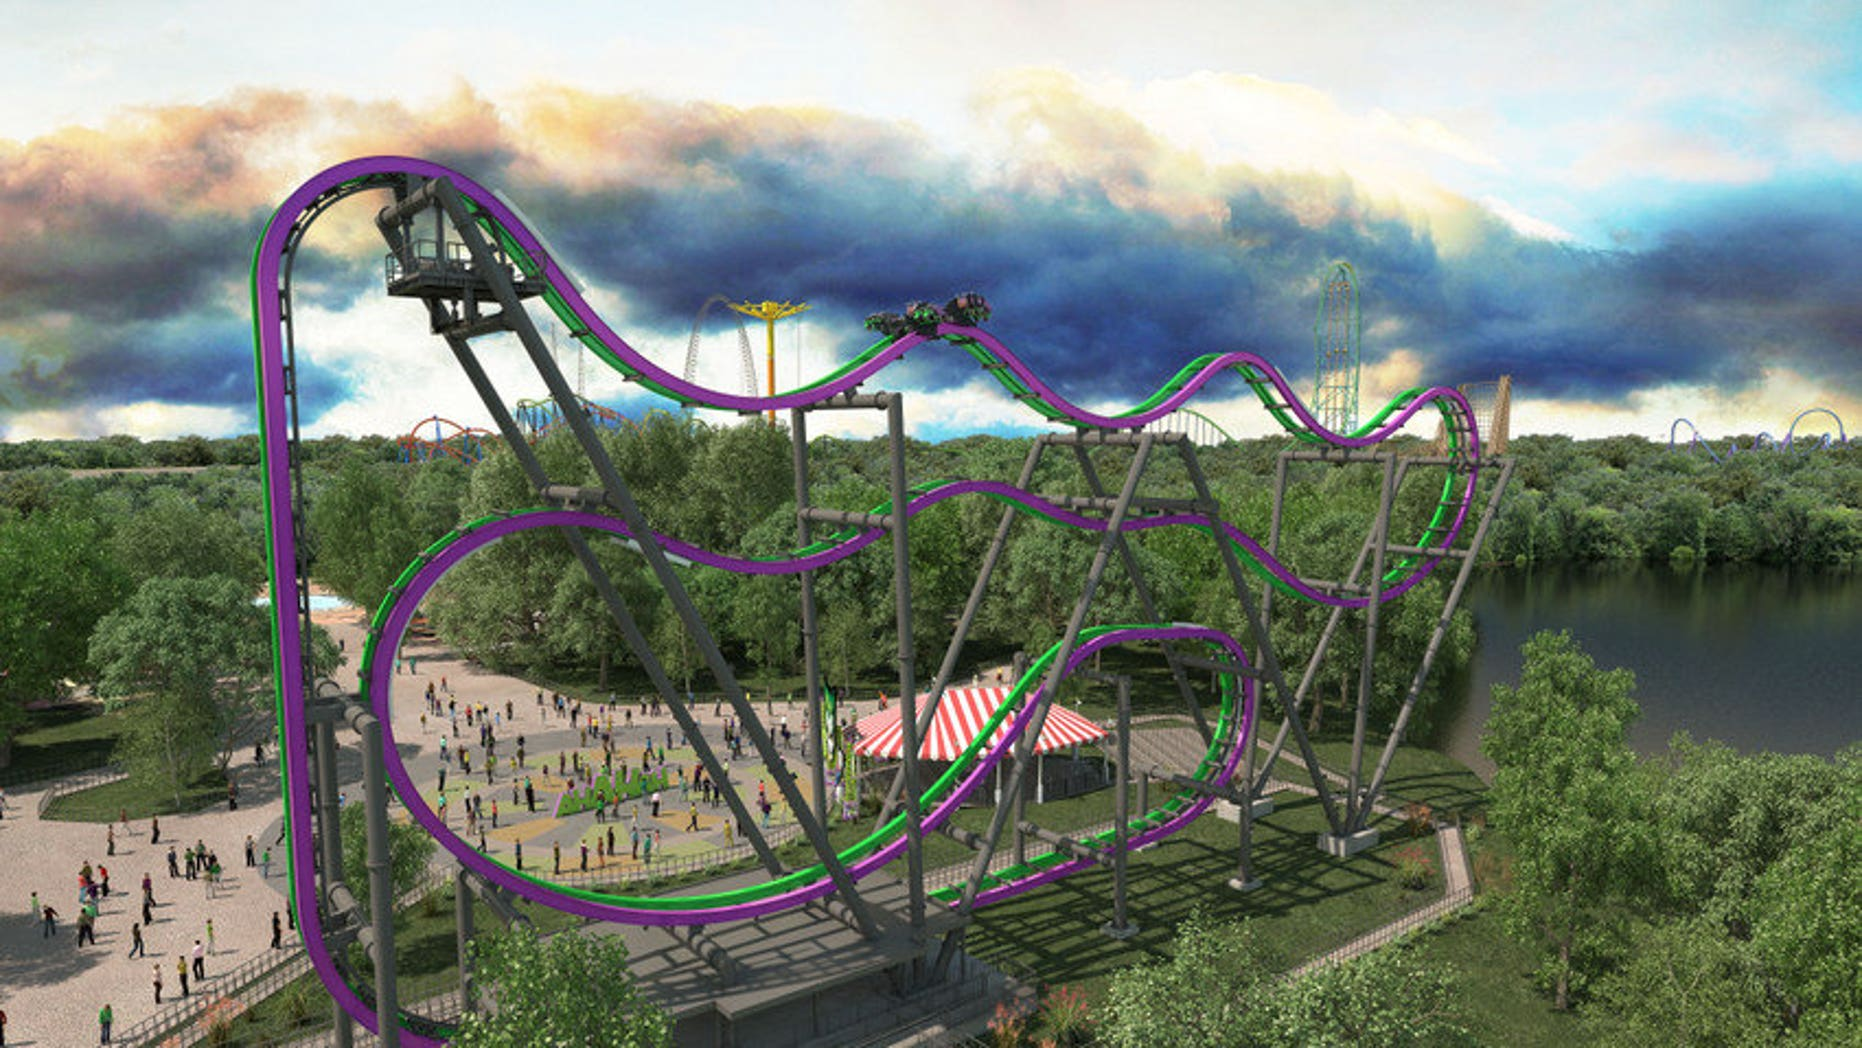 No Laughing Matter Six Flags Joker Coaster Gets Stuck With Riders Hanging Upside Down